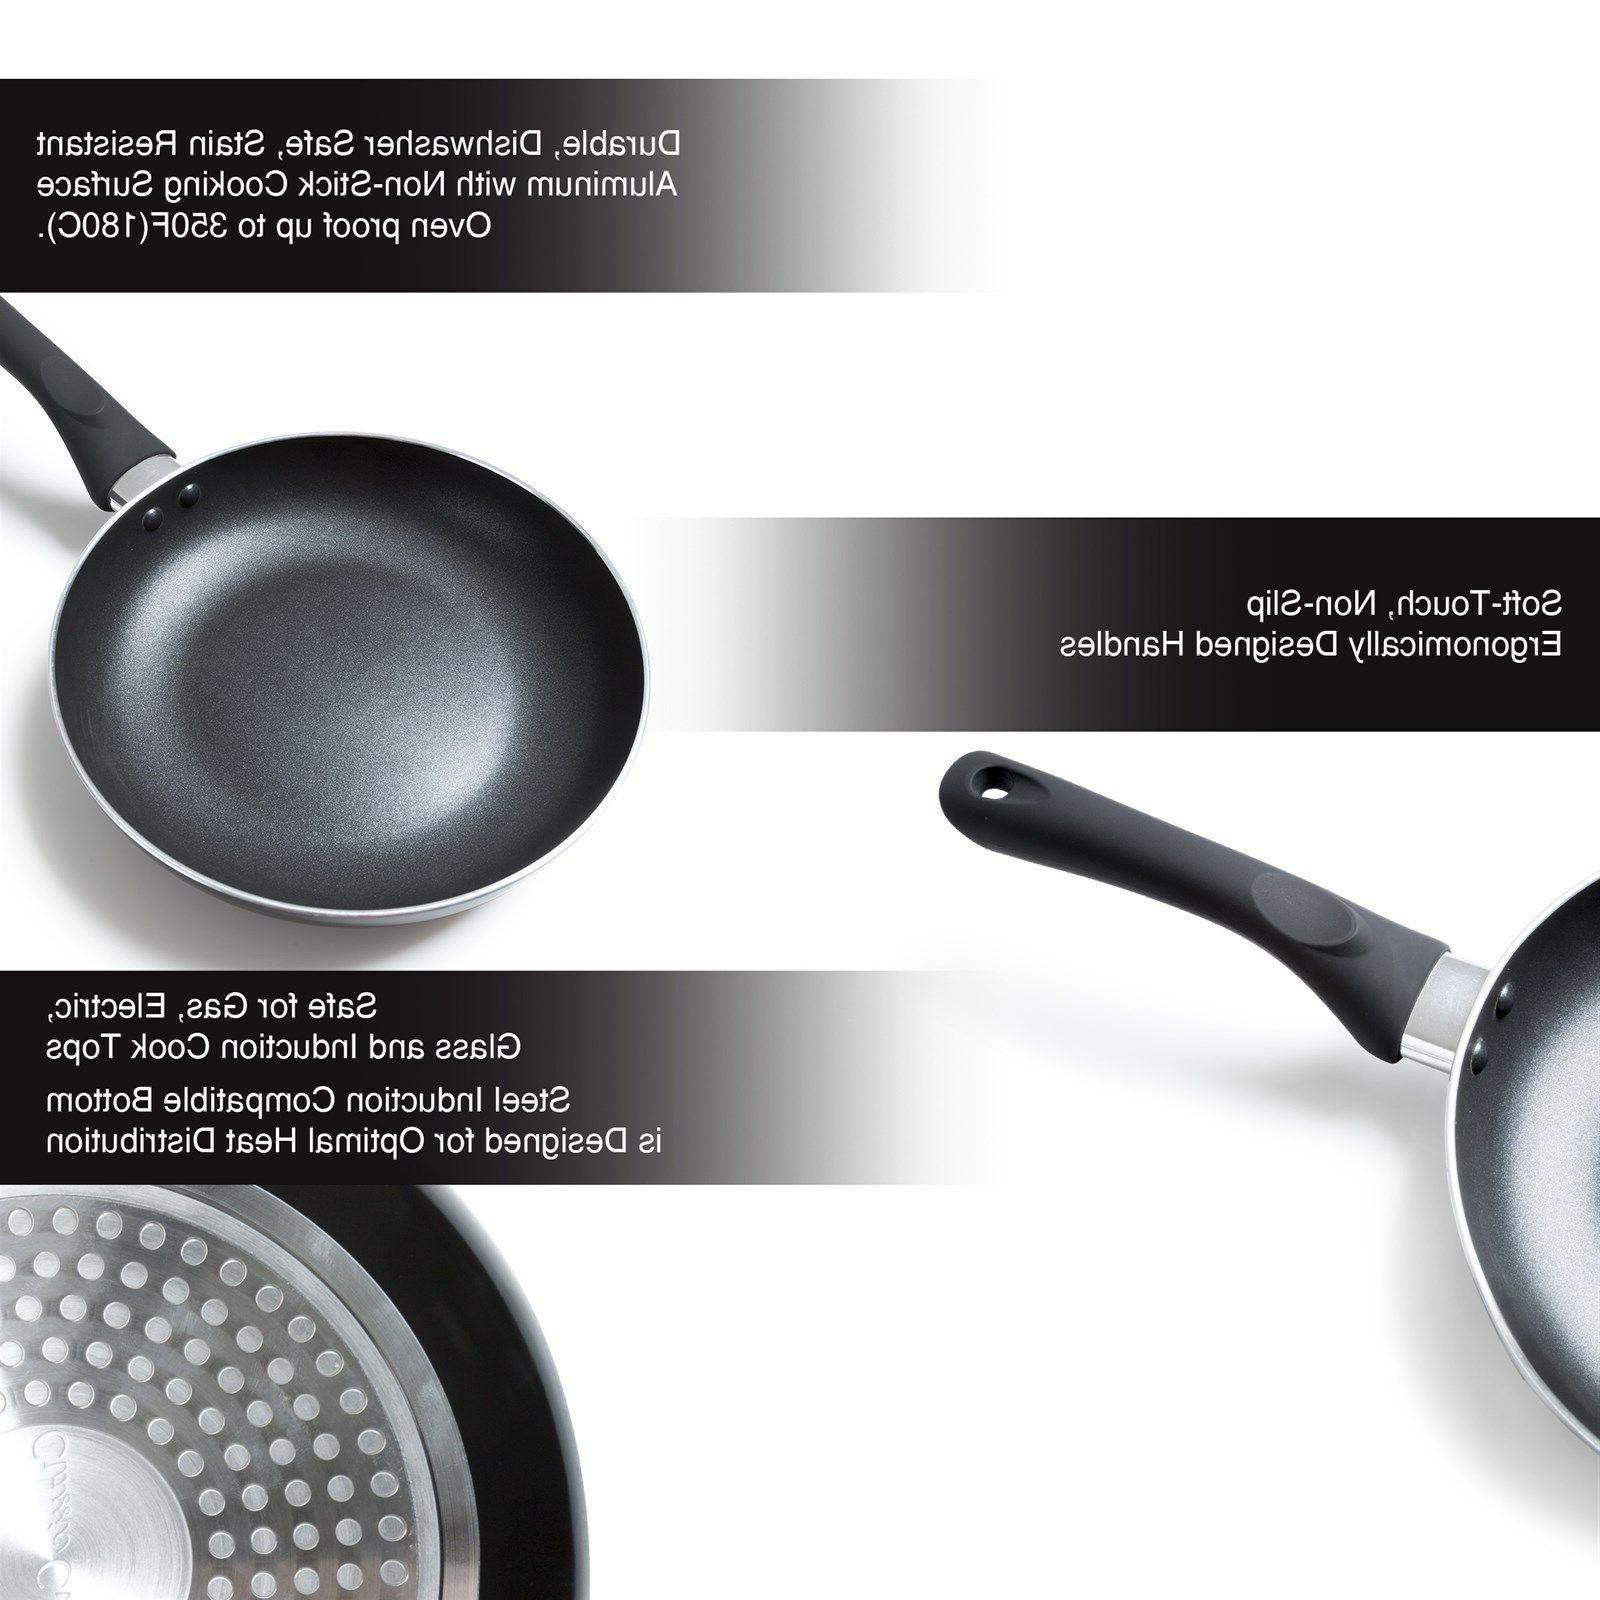 12 Non Frying Pan Safe Electric